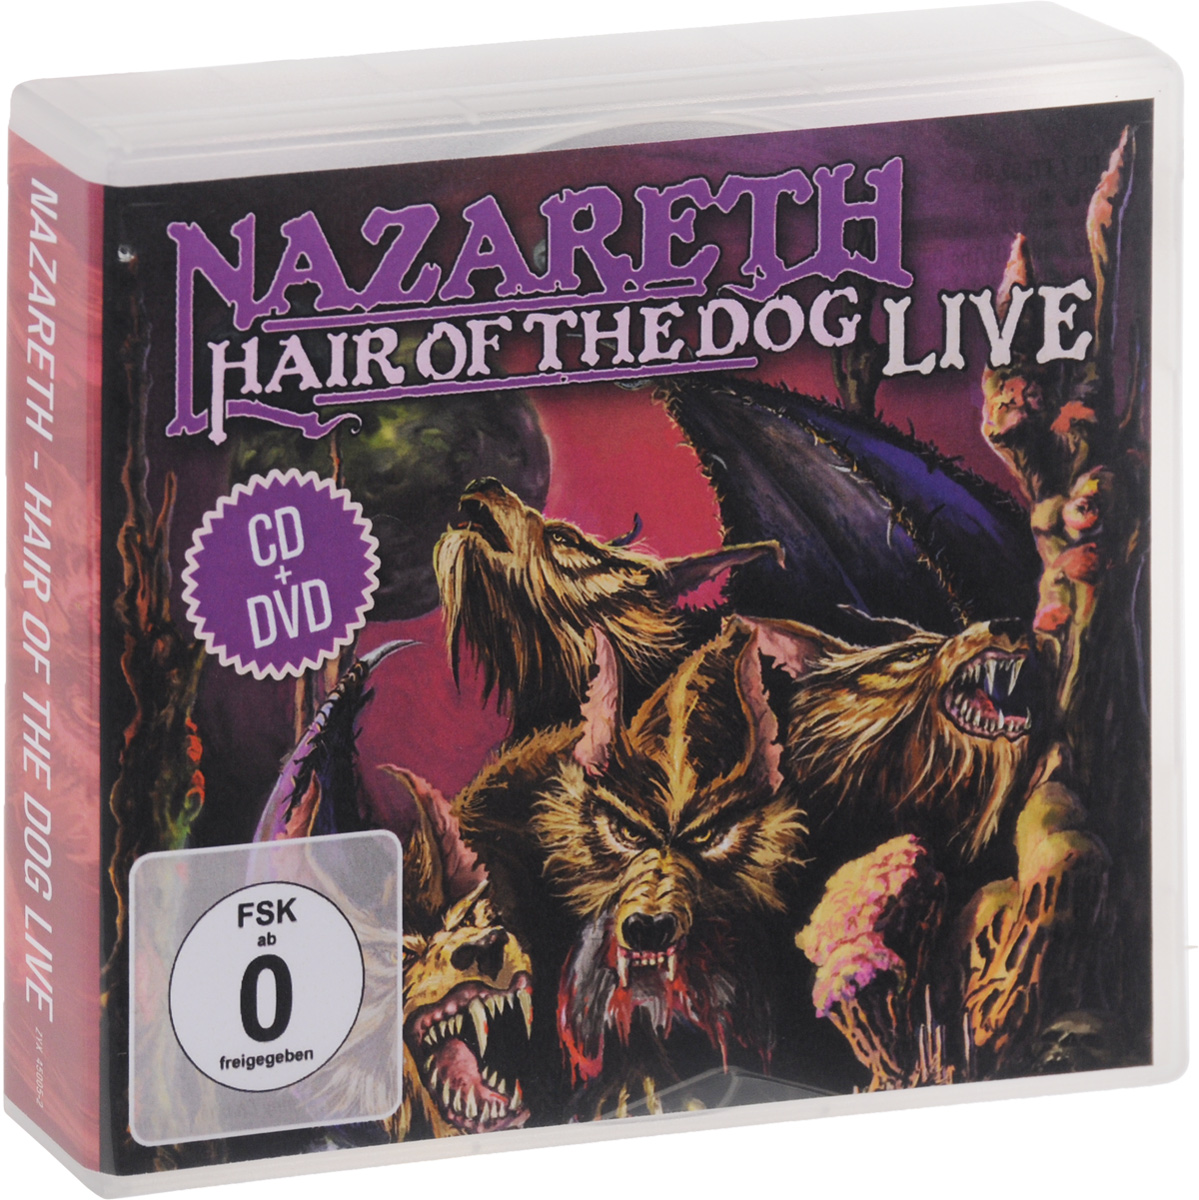 Nazareth Nazareth. Hair Of The Dog. Live (CD + DVD) heir of the dog